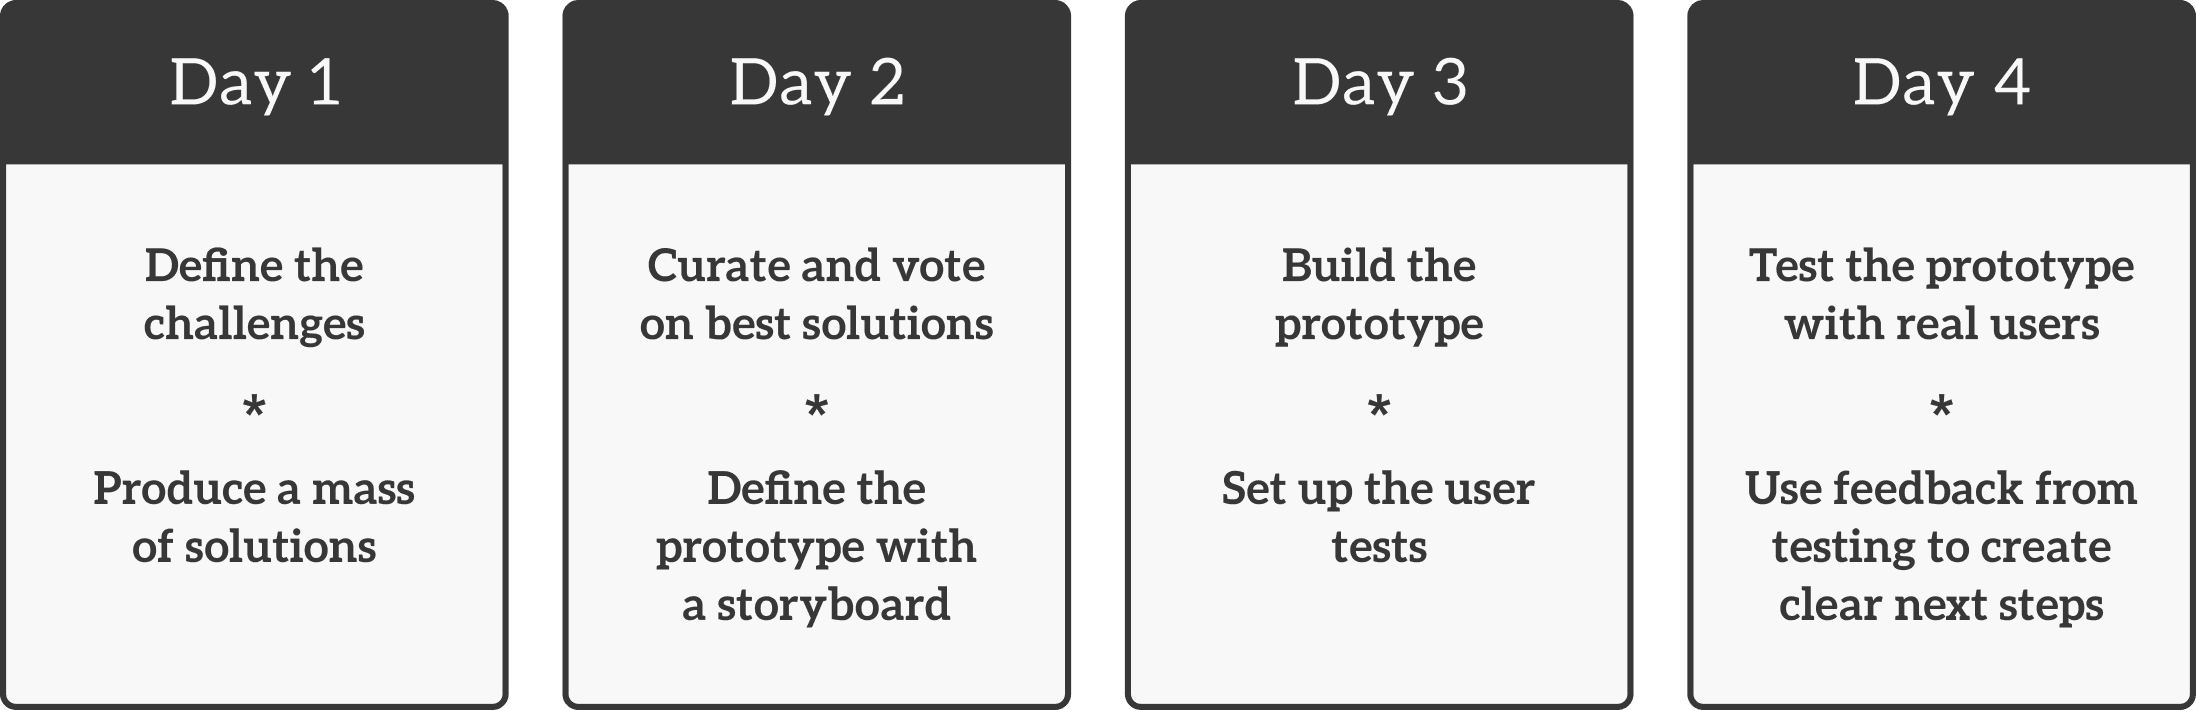 The design sprint agenda. Same info as the previous paragraph.